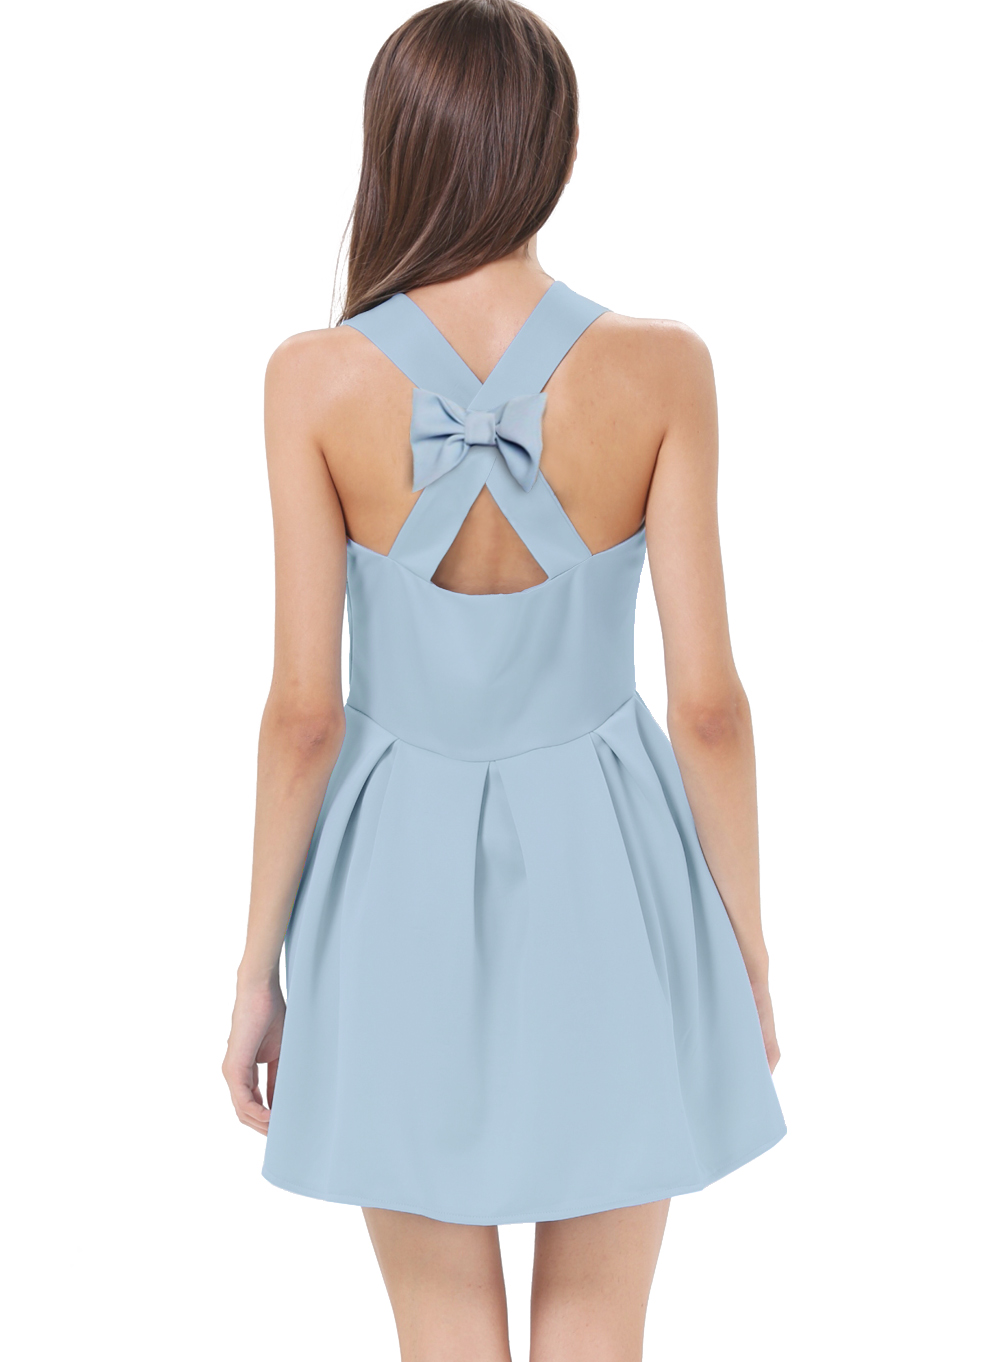 Blue Criss Cross Backless Bow Pleated Dress - Sheinside.com